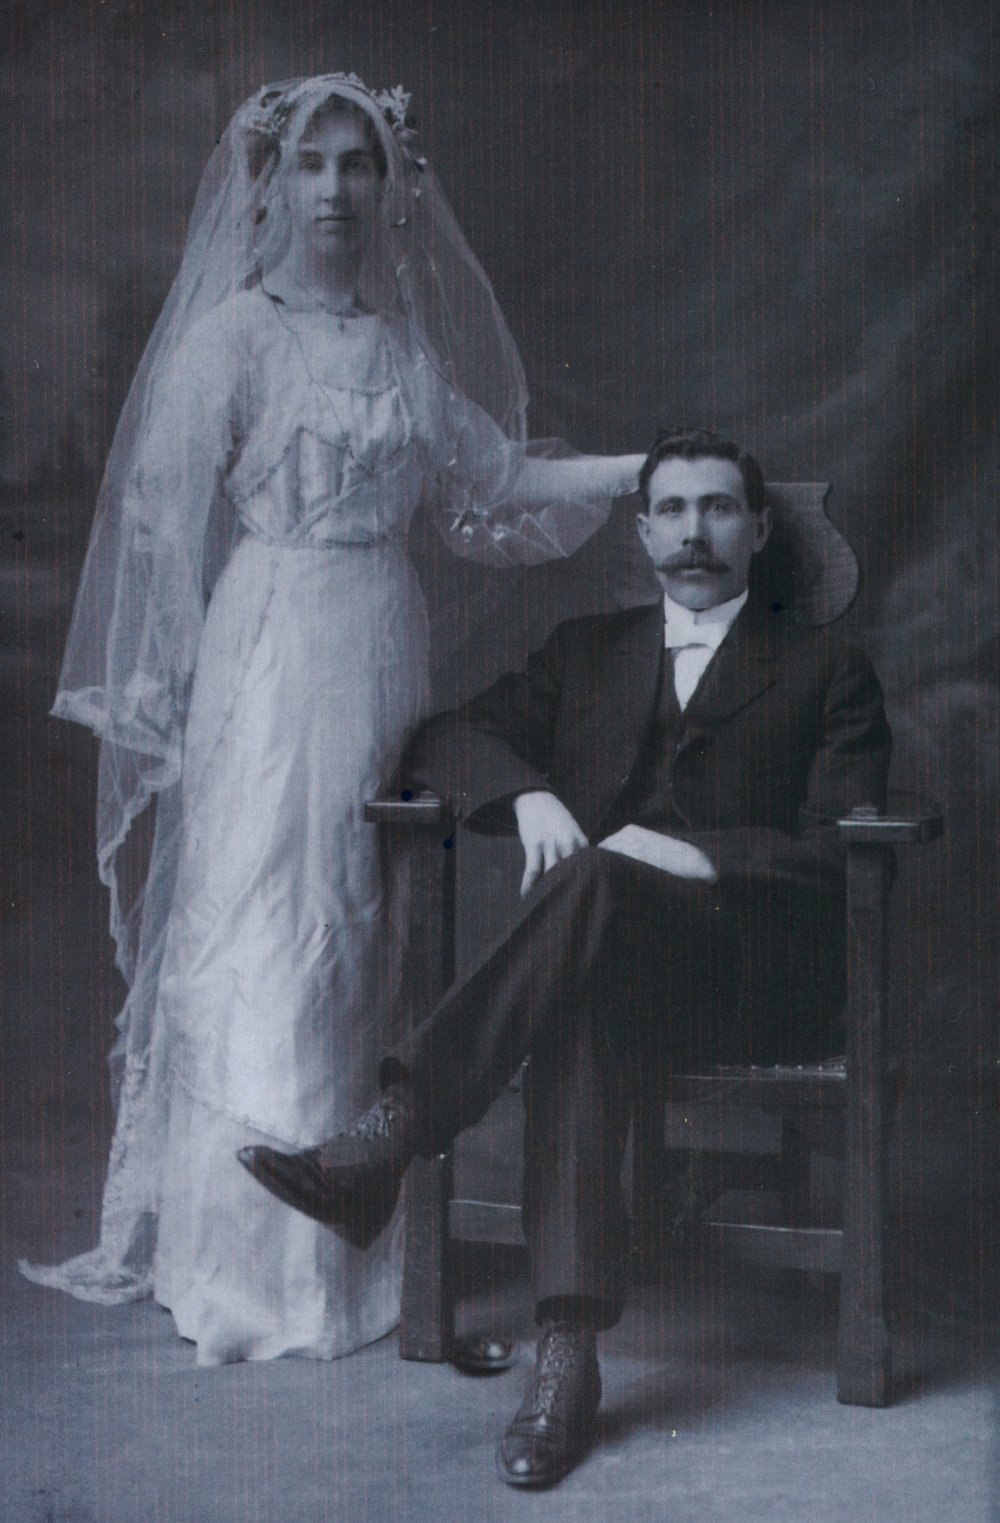 Joseph Vansickle & Mary Branch